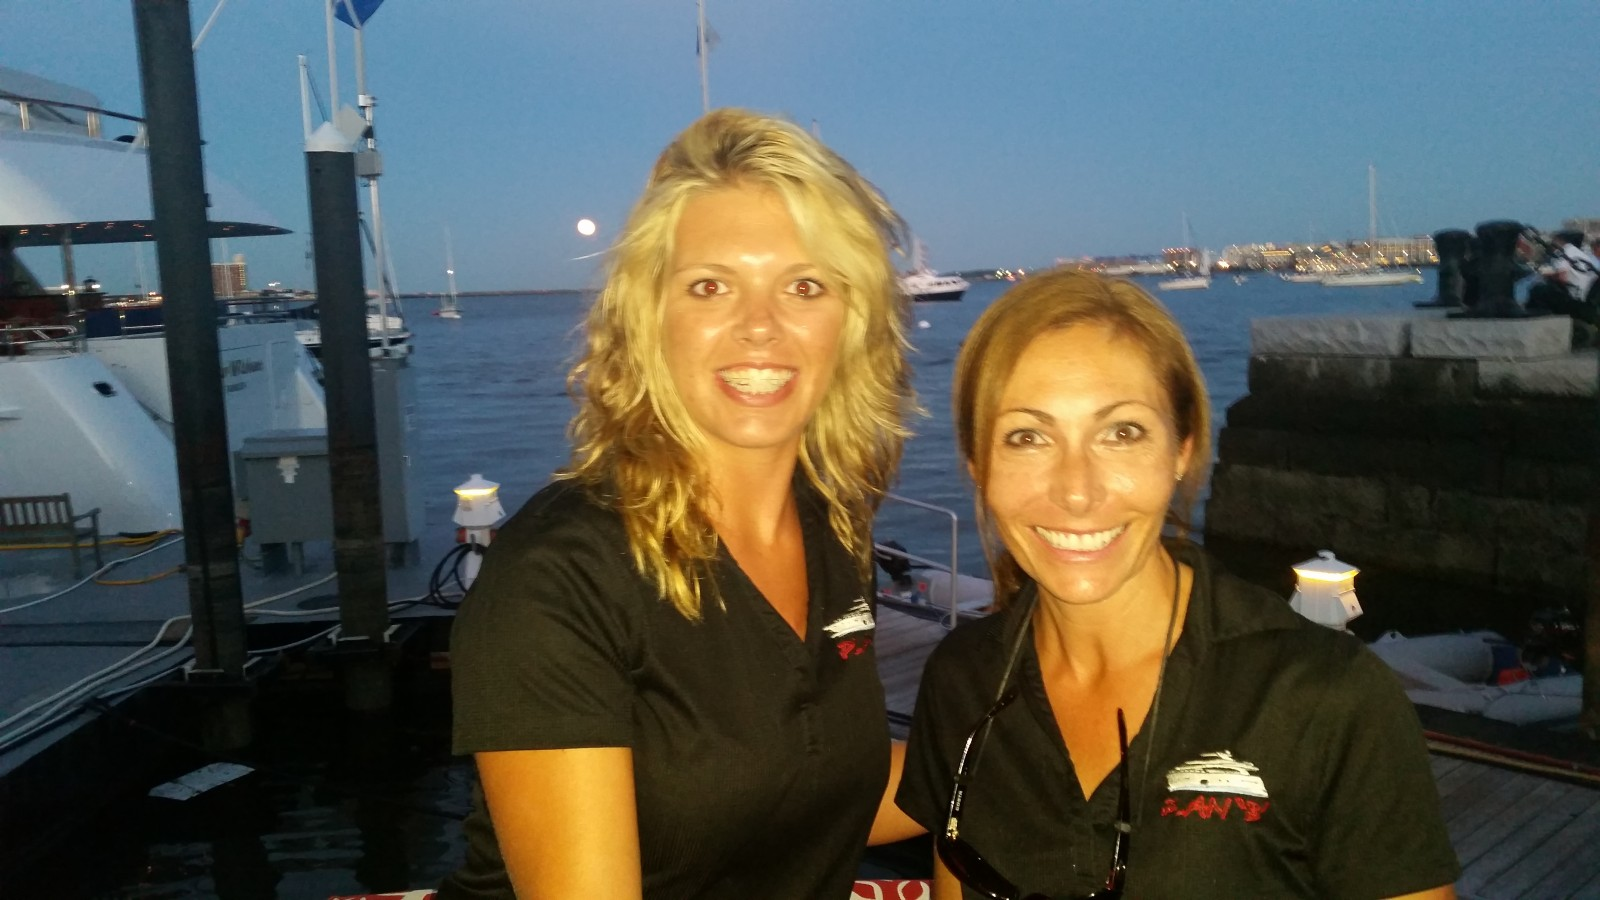 Taking a break from an owner's cruise, Deck/Stew Sterna Stockhoff and Chief Stew Heather Furlani of M/Y Plan B snapped this selfie at Waterboat Marina in Boston on the night of the blue moon, July 31. PHOTO/DECK/STEW STERNA STOCKHOFF